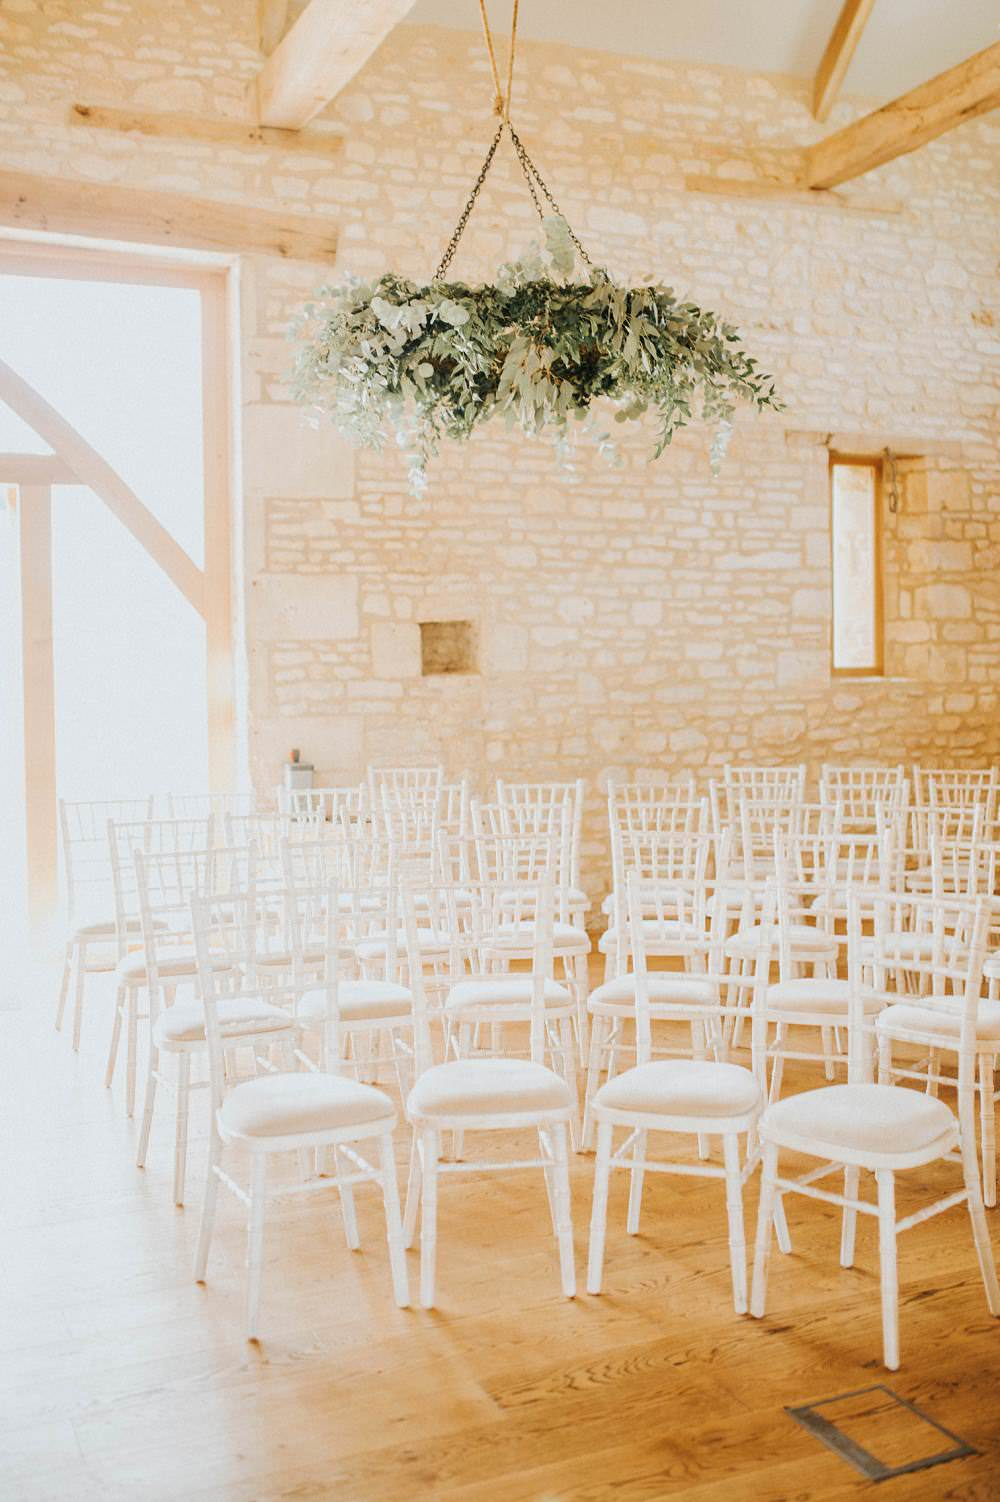 Ceremony Room Hanging Foliage Chandelier Hoop Wreath Suspended Aisle Chairs Eucalyptus Boho Greenery Barn Wedding Kerry Diamond Photography